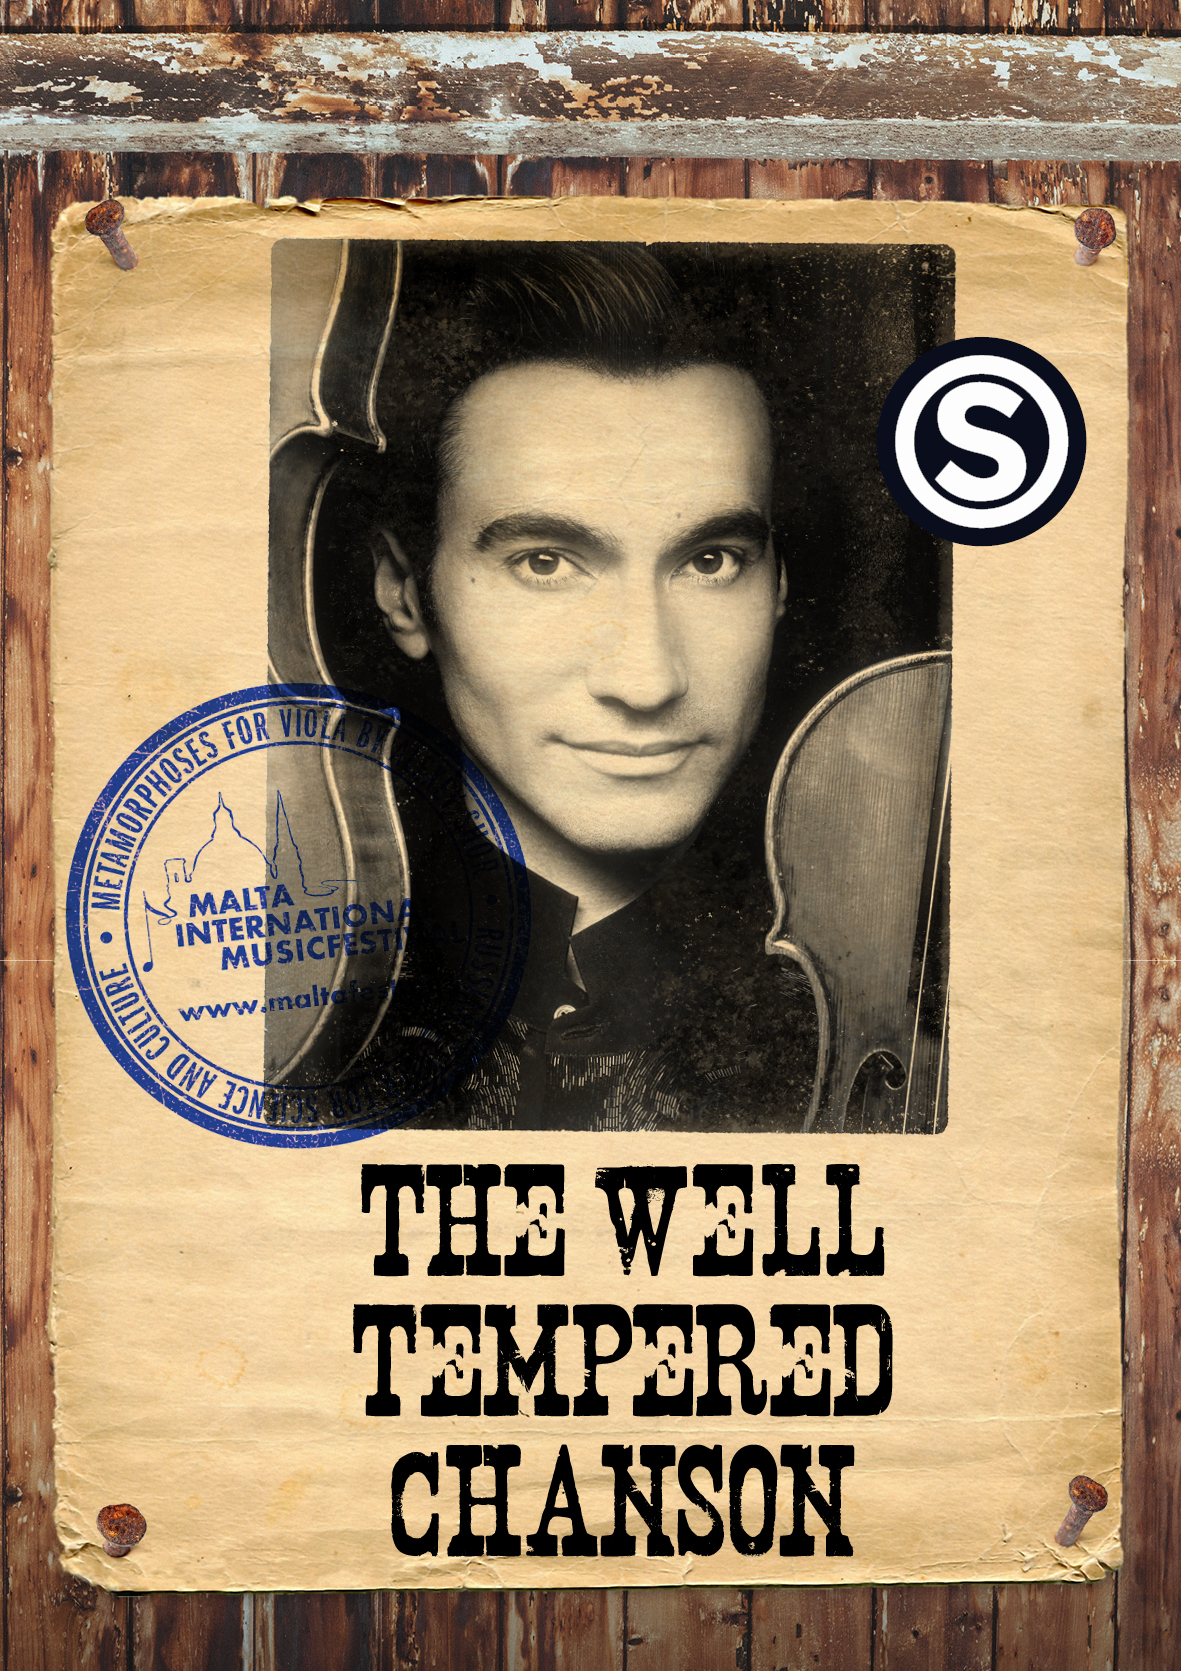 THE WELL TEMPERED CHANSON - David Aaron Carpenter Viola flyer